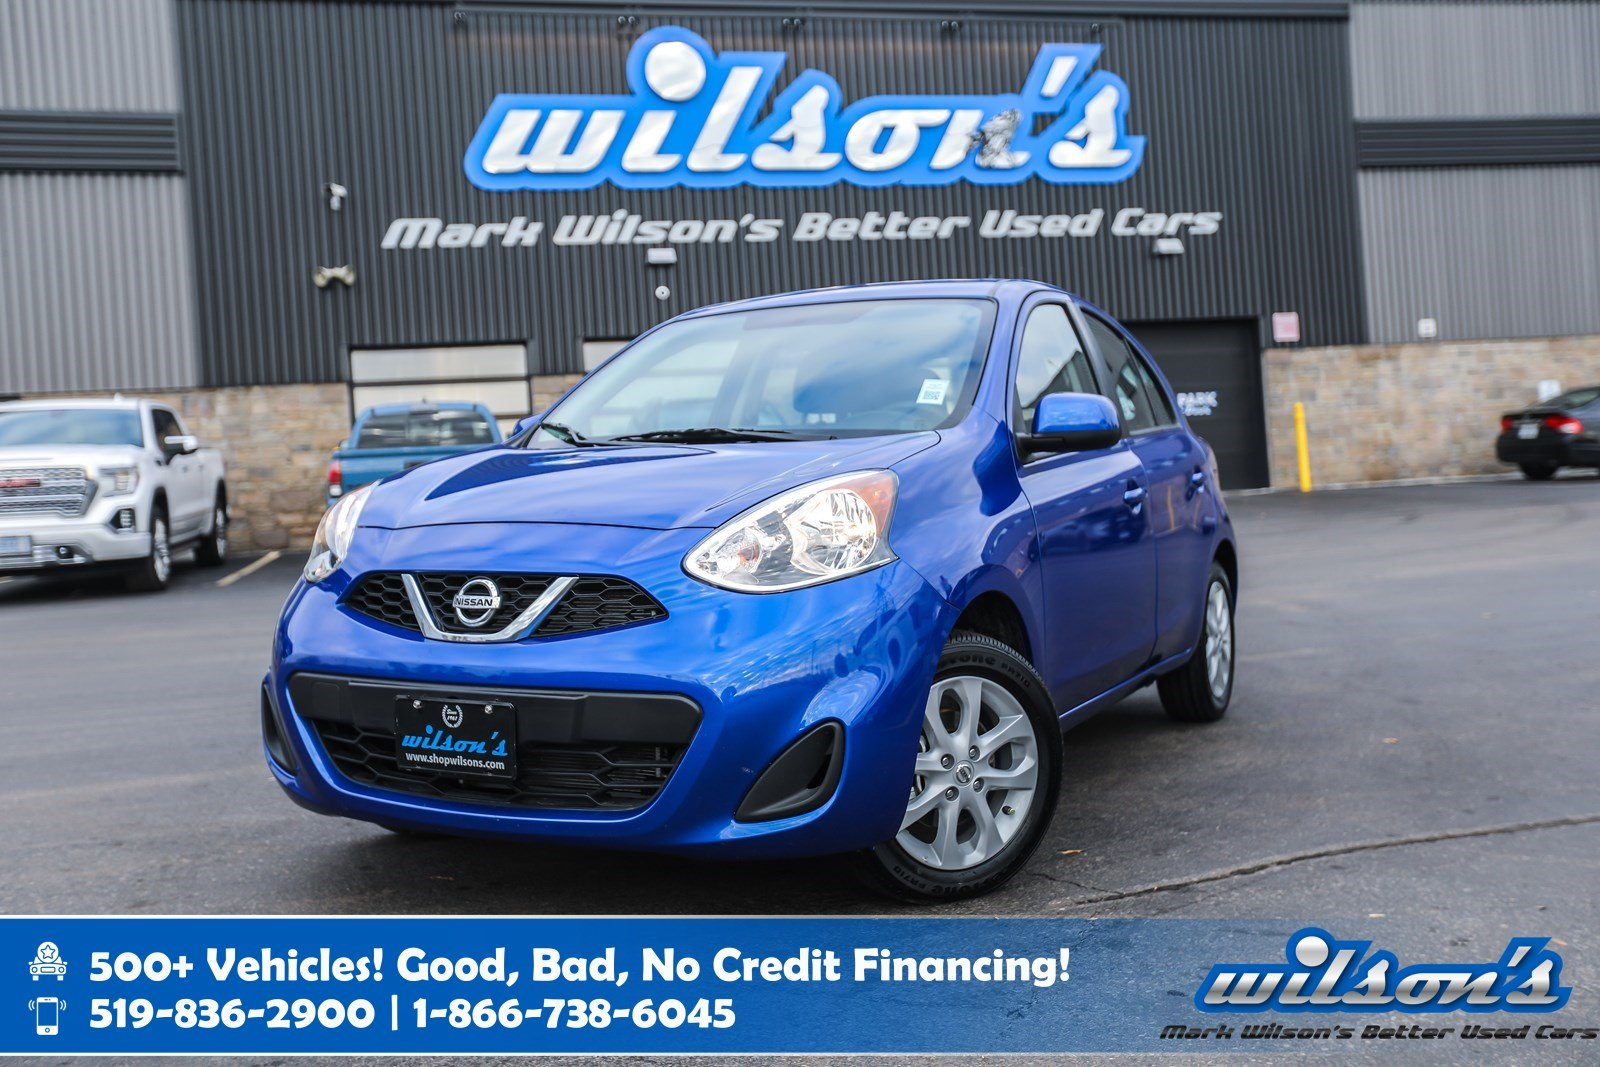 Certified Pre-Owned 2019 Nissan Micra SV Hatchback Used, Rear Camera, Bluetooth, Cruise Control, Power Group, and more!